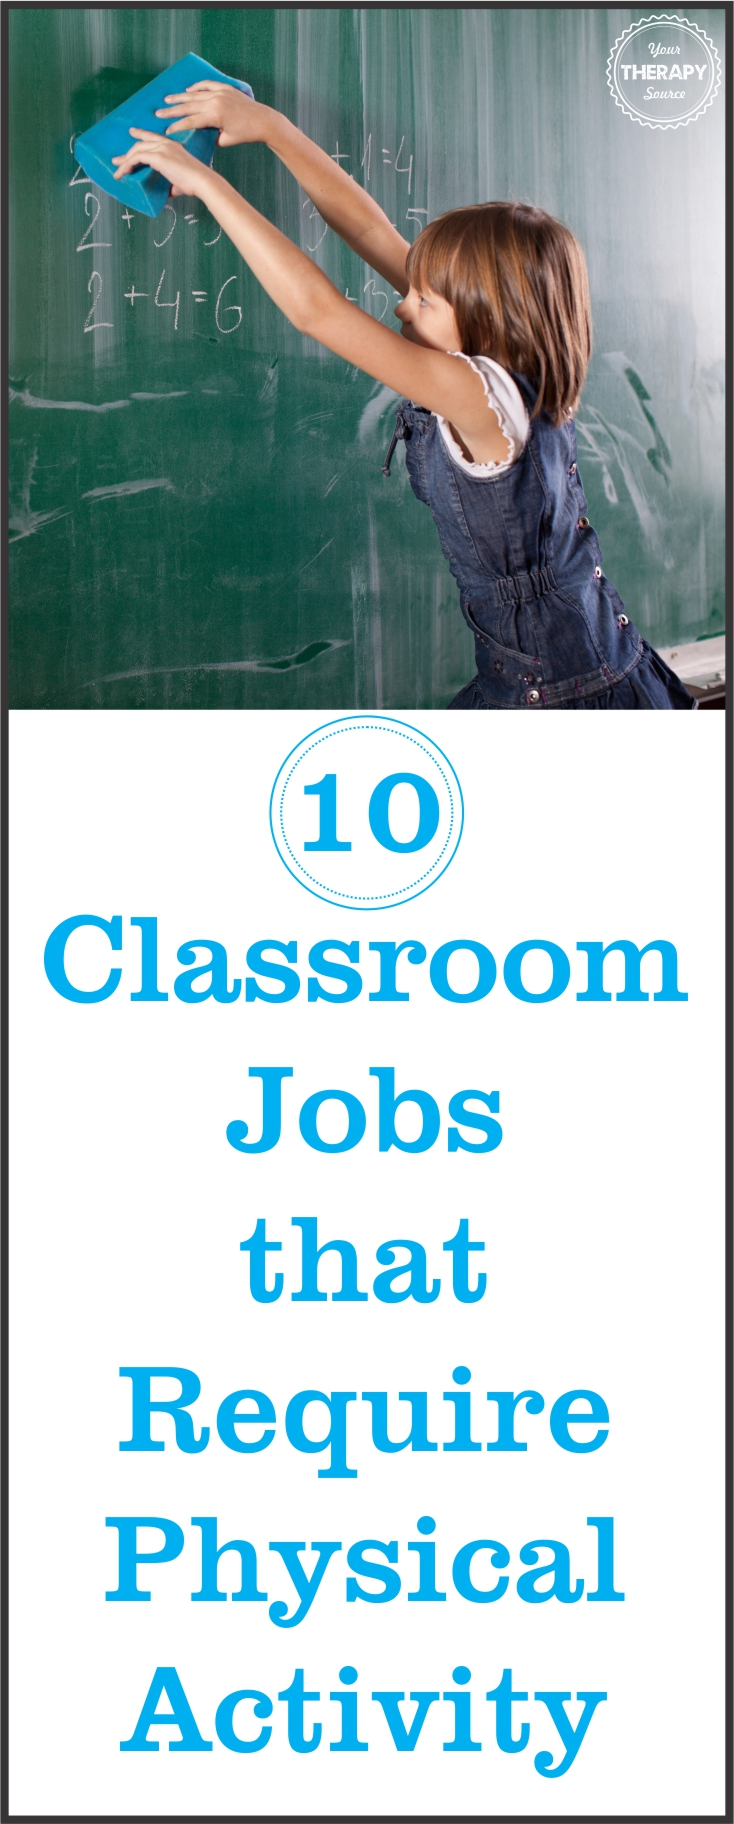 Classroom Jobs Physical Activity